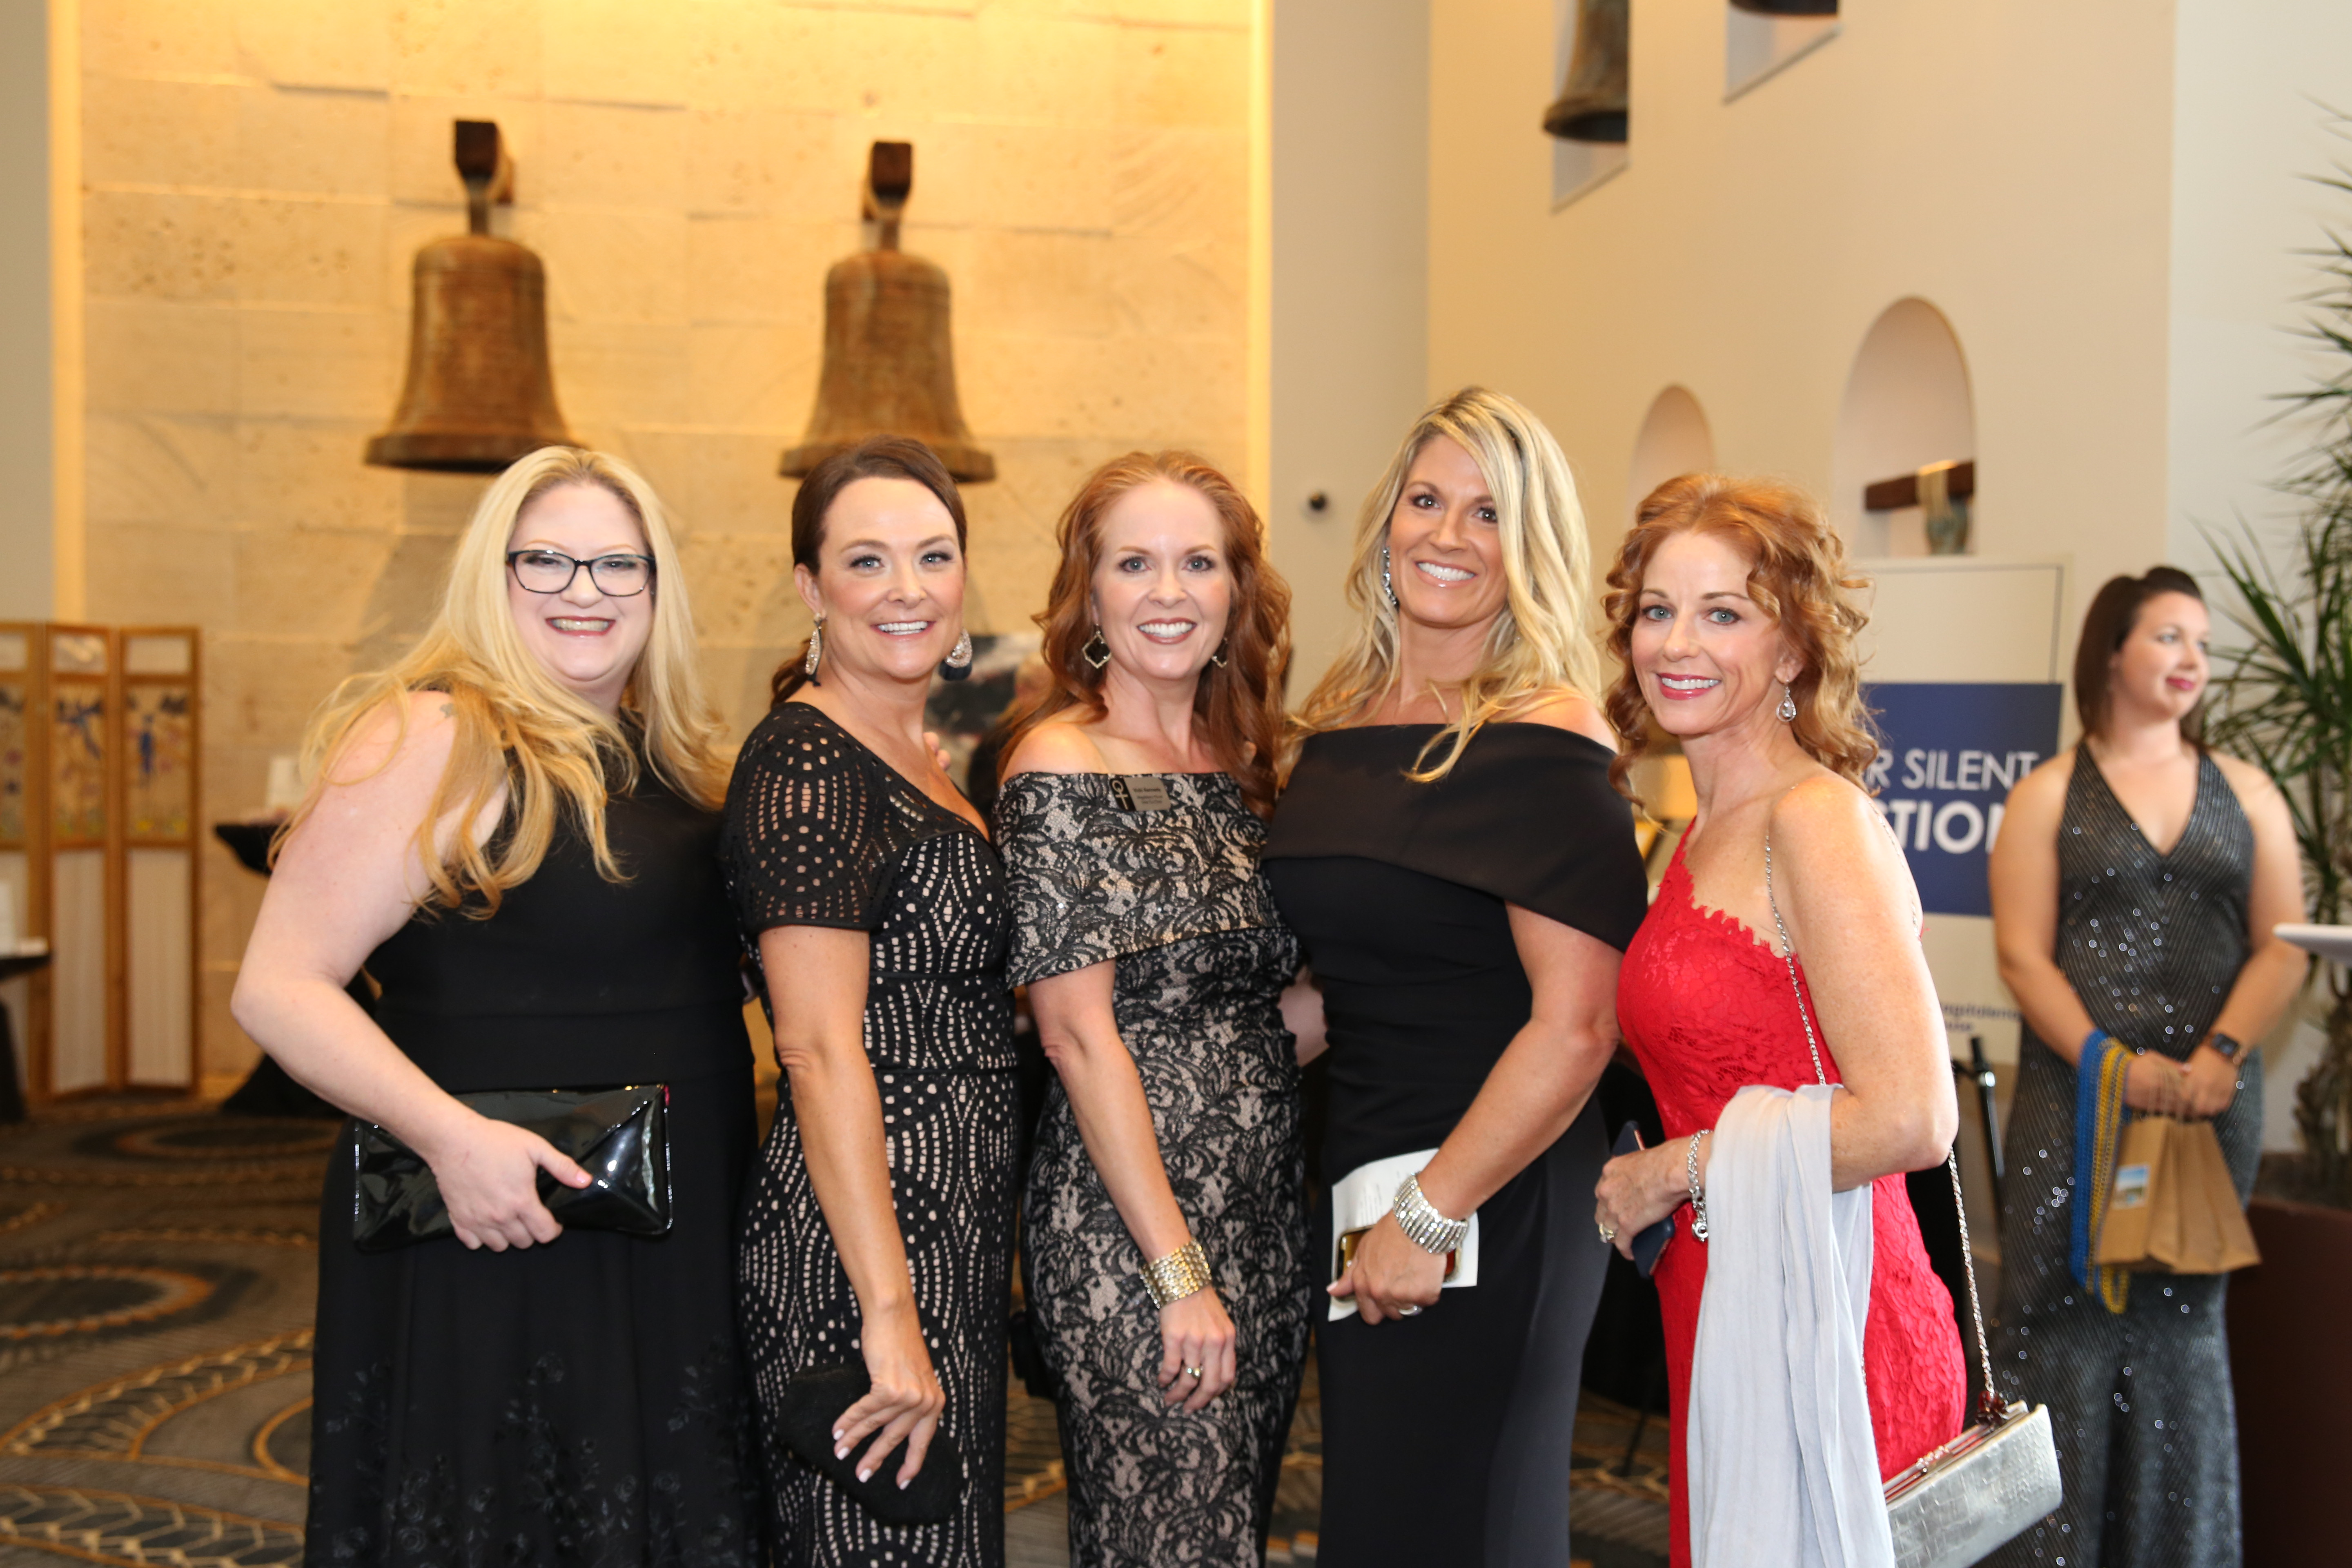 Event Photos - click here to view